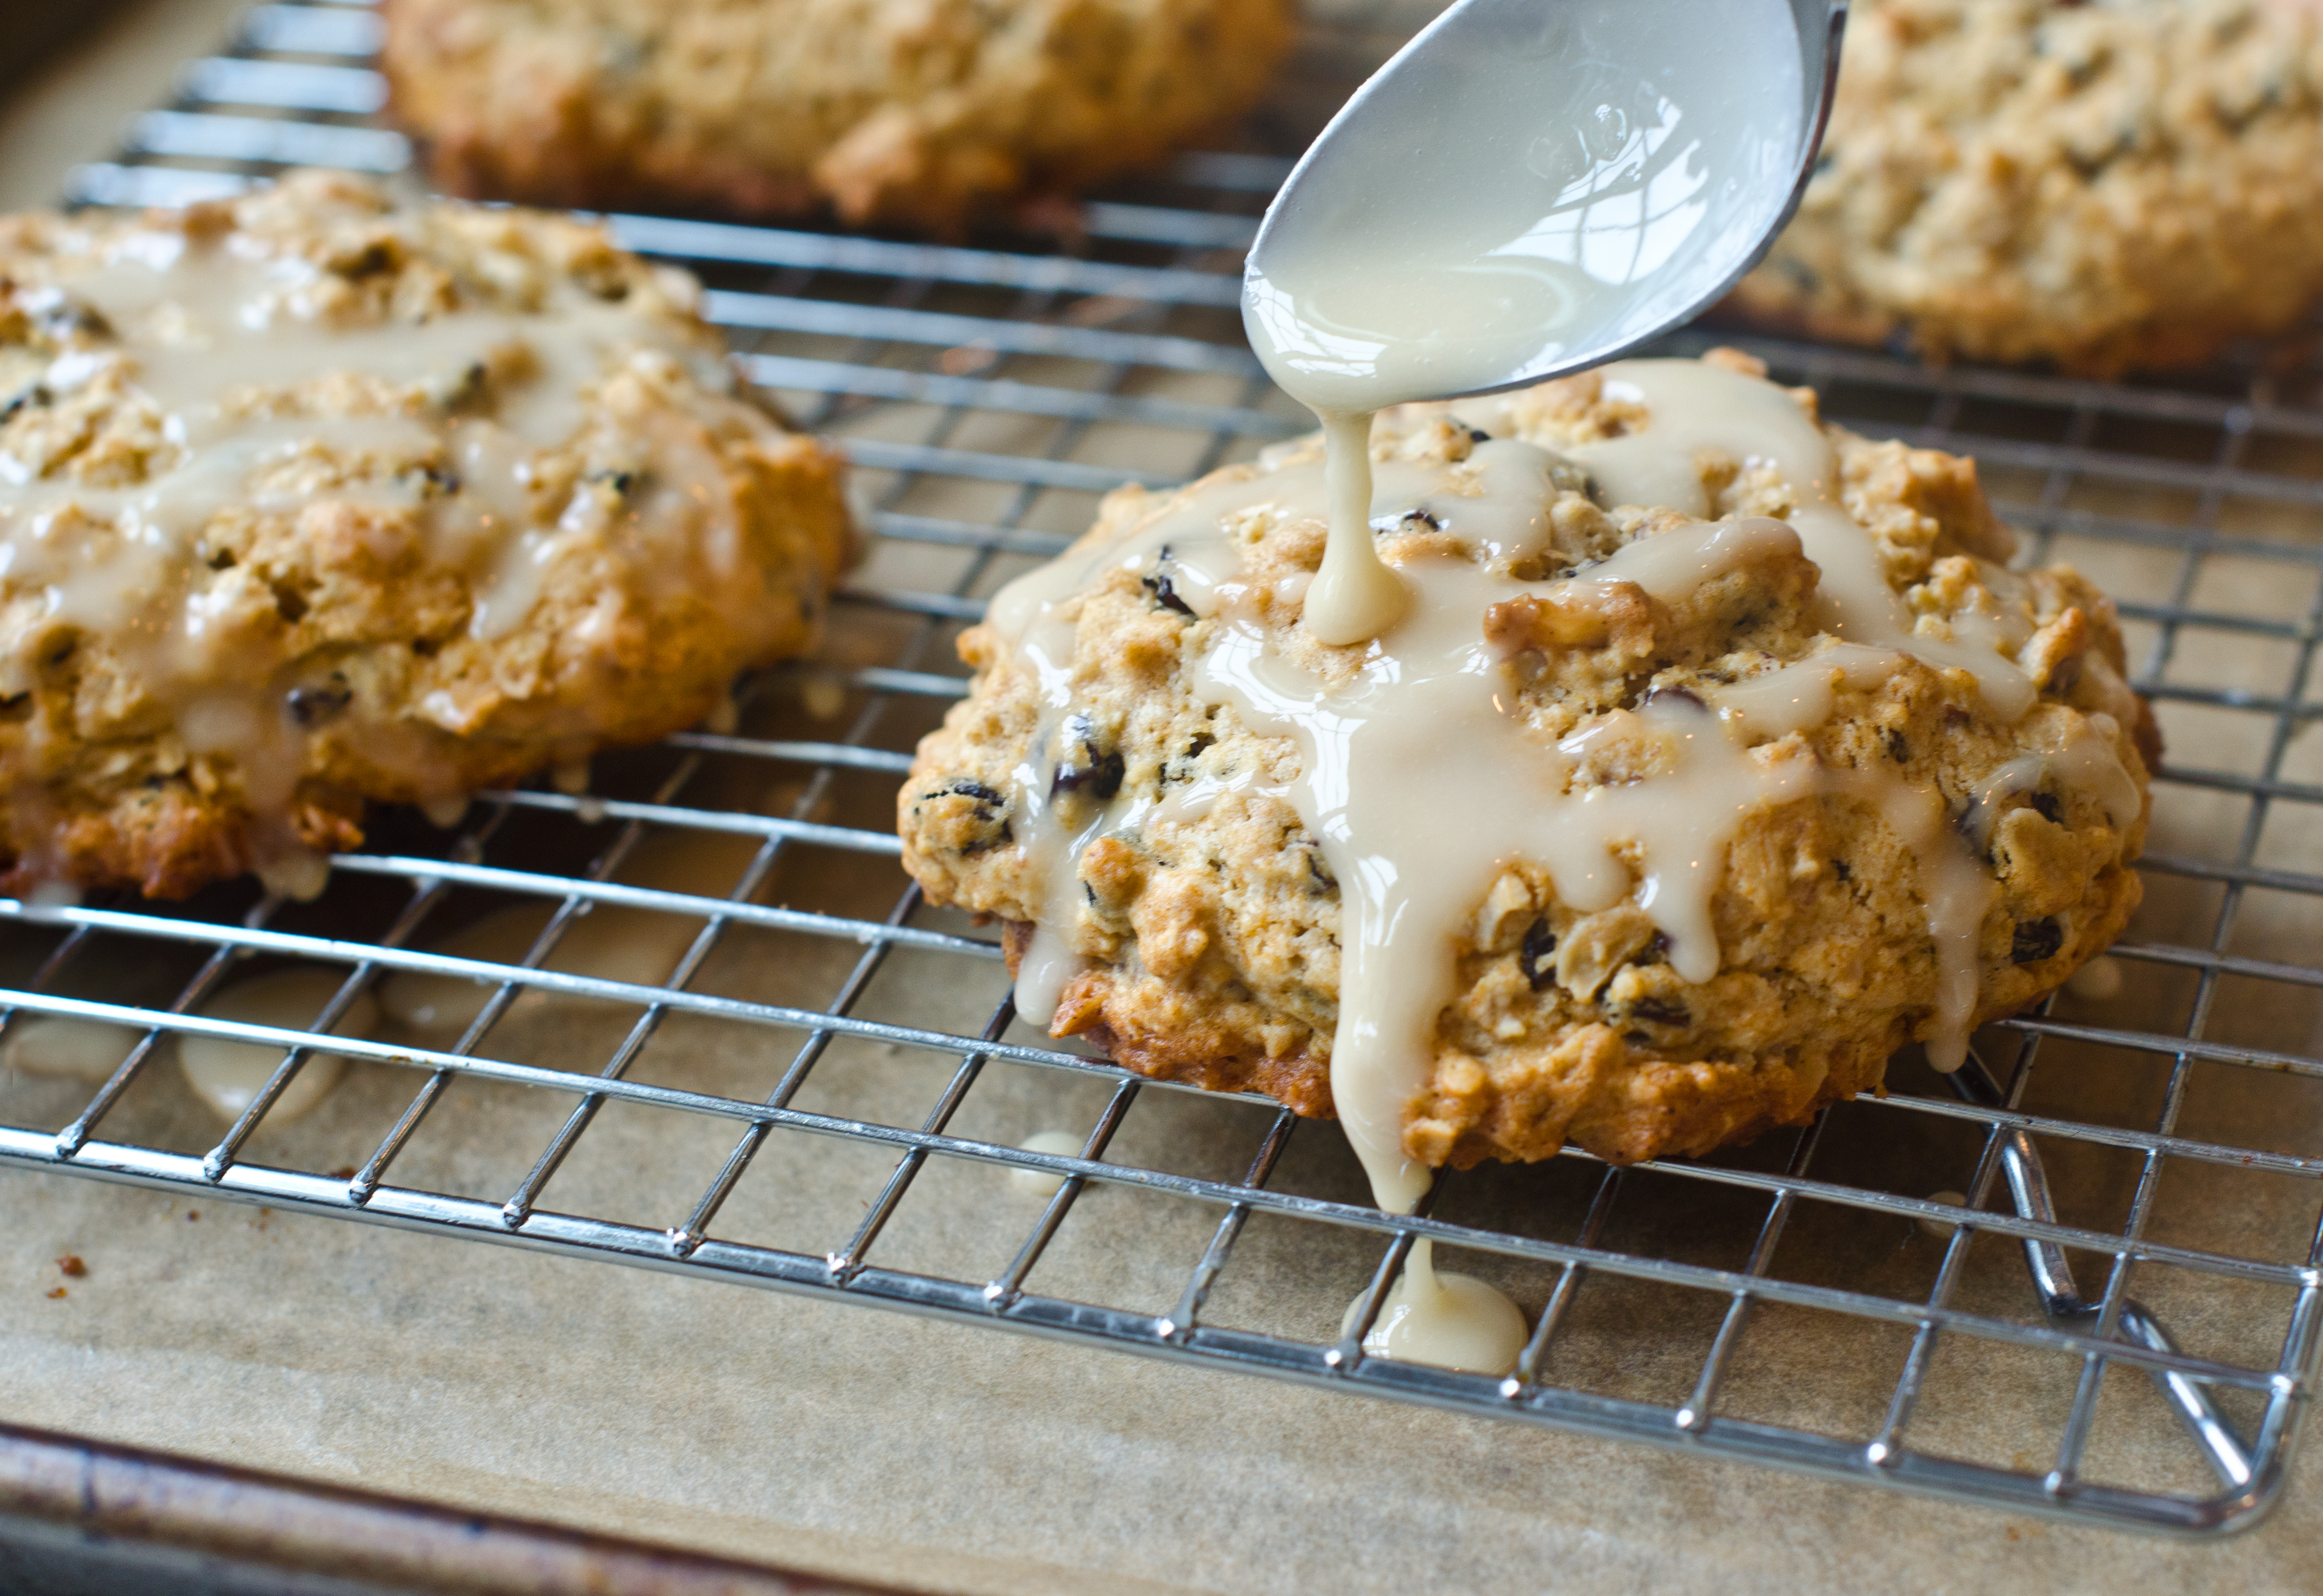 10. Glazed Oatmeal-Maple Scones with Pecans & Currants